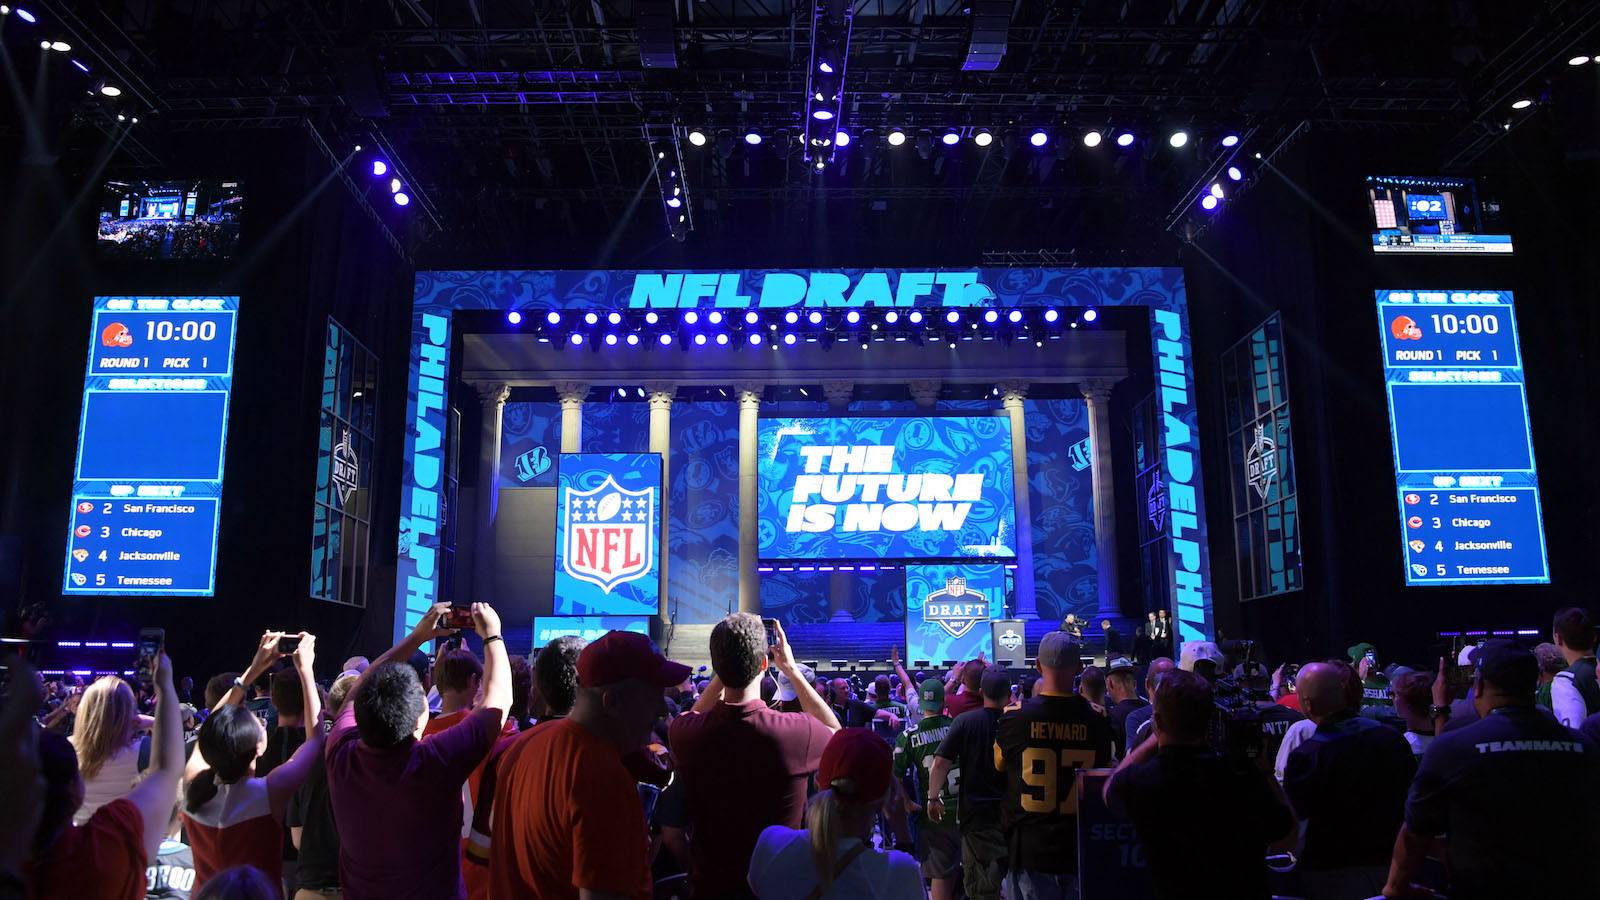 nfl draft day 3 can you stream nfl games